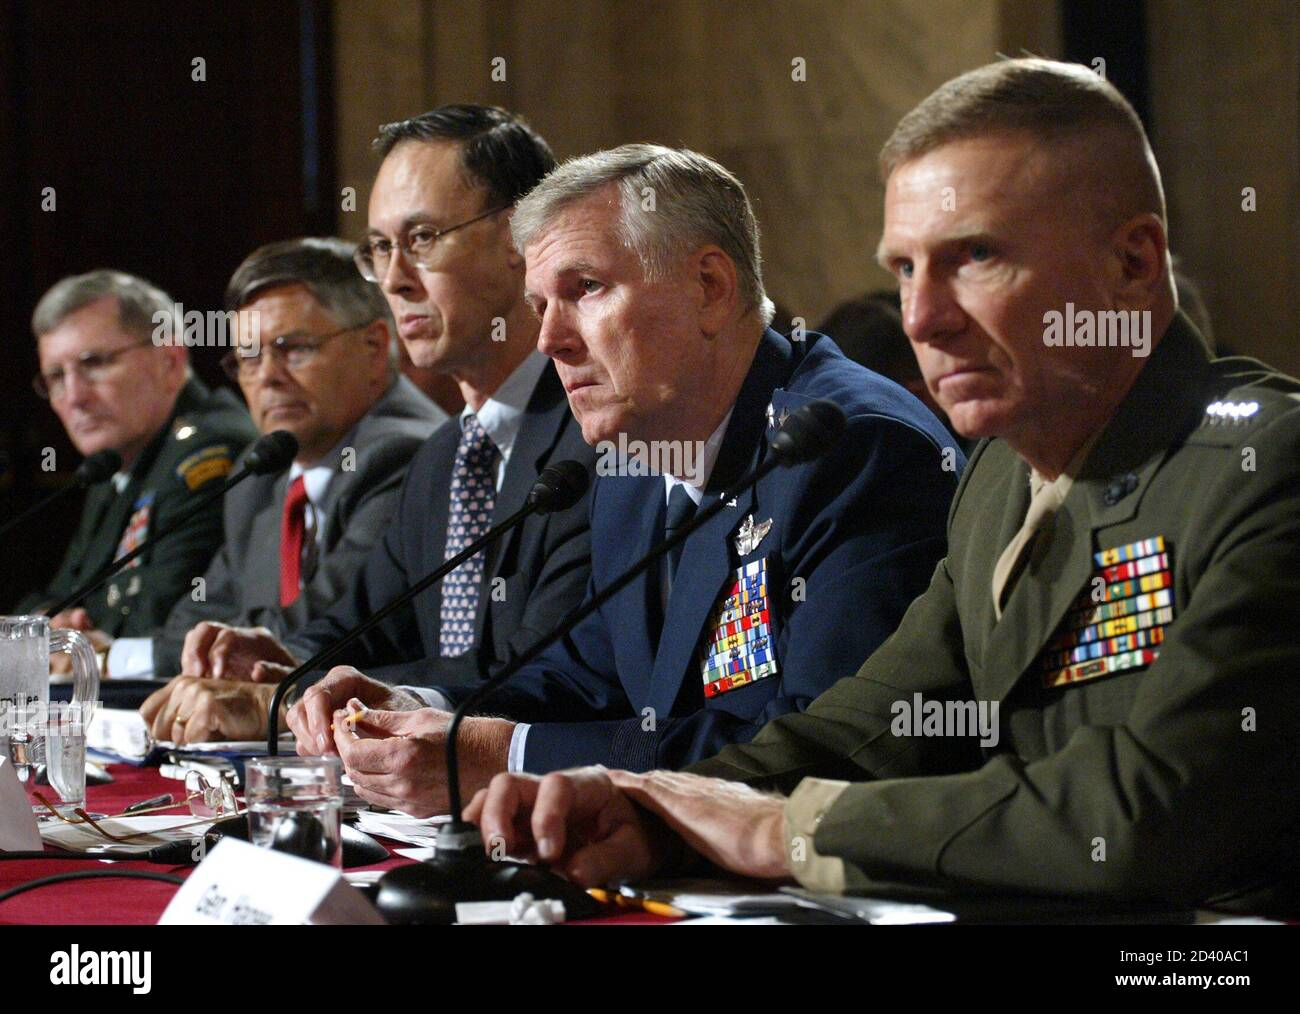 (Left to right) U.S. Army Gen. Peter Schoomaker, Principal Deputy Undersecretary of Defense for Personnel and Readiness Charles Abell, Undersecretary of Defense for Personnel and Readiness, David Chu, General Richard Myers, Chief of Staff, and Commandant, U.S. Marine Corps Gen. Michael Hagee testify at a hearing on fighting the global war on terrorism at the Senate Armed Services Committee on Capitol Hill in Washington D.C., June 30, 2005. REUTERS/Yuri Gripas  YG/KS Stock Photo